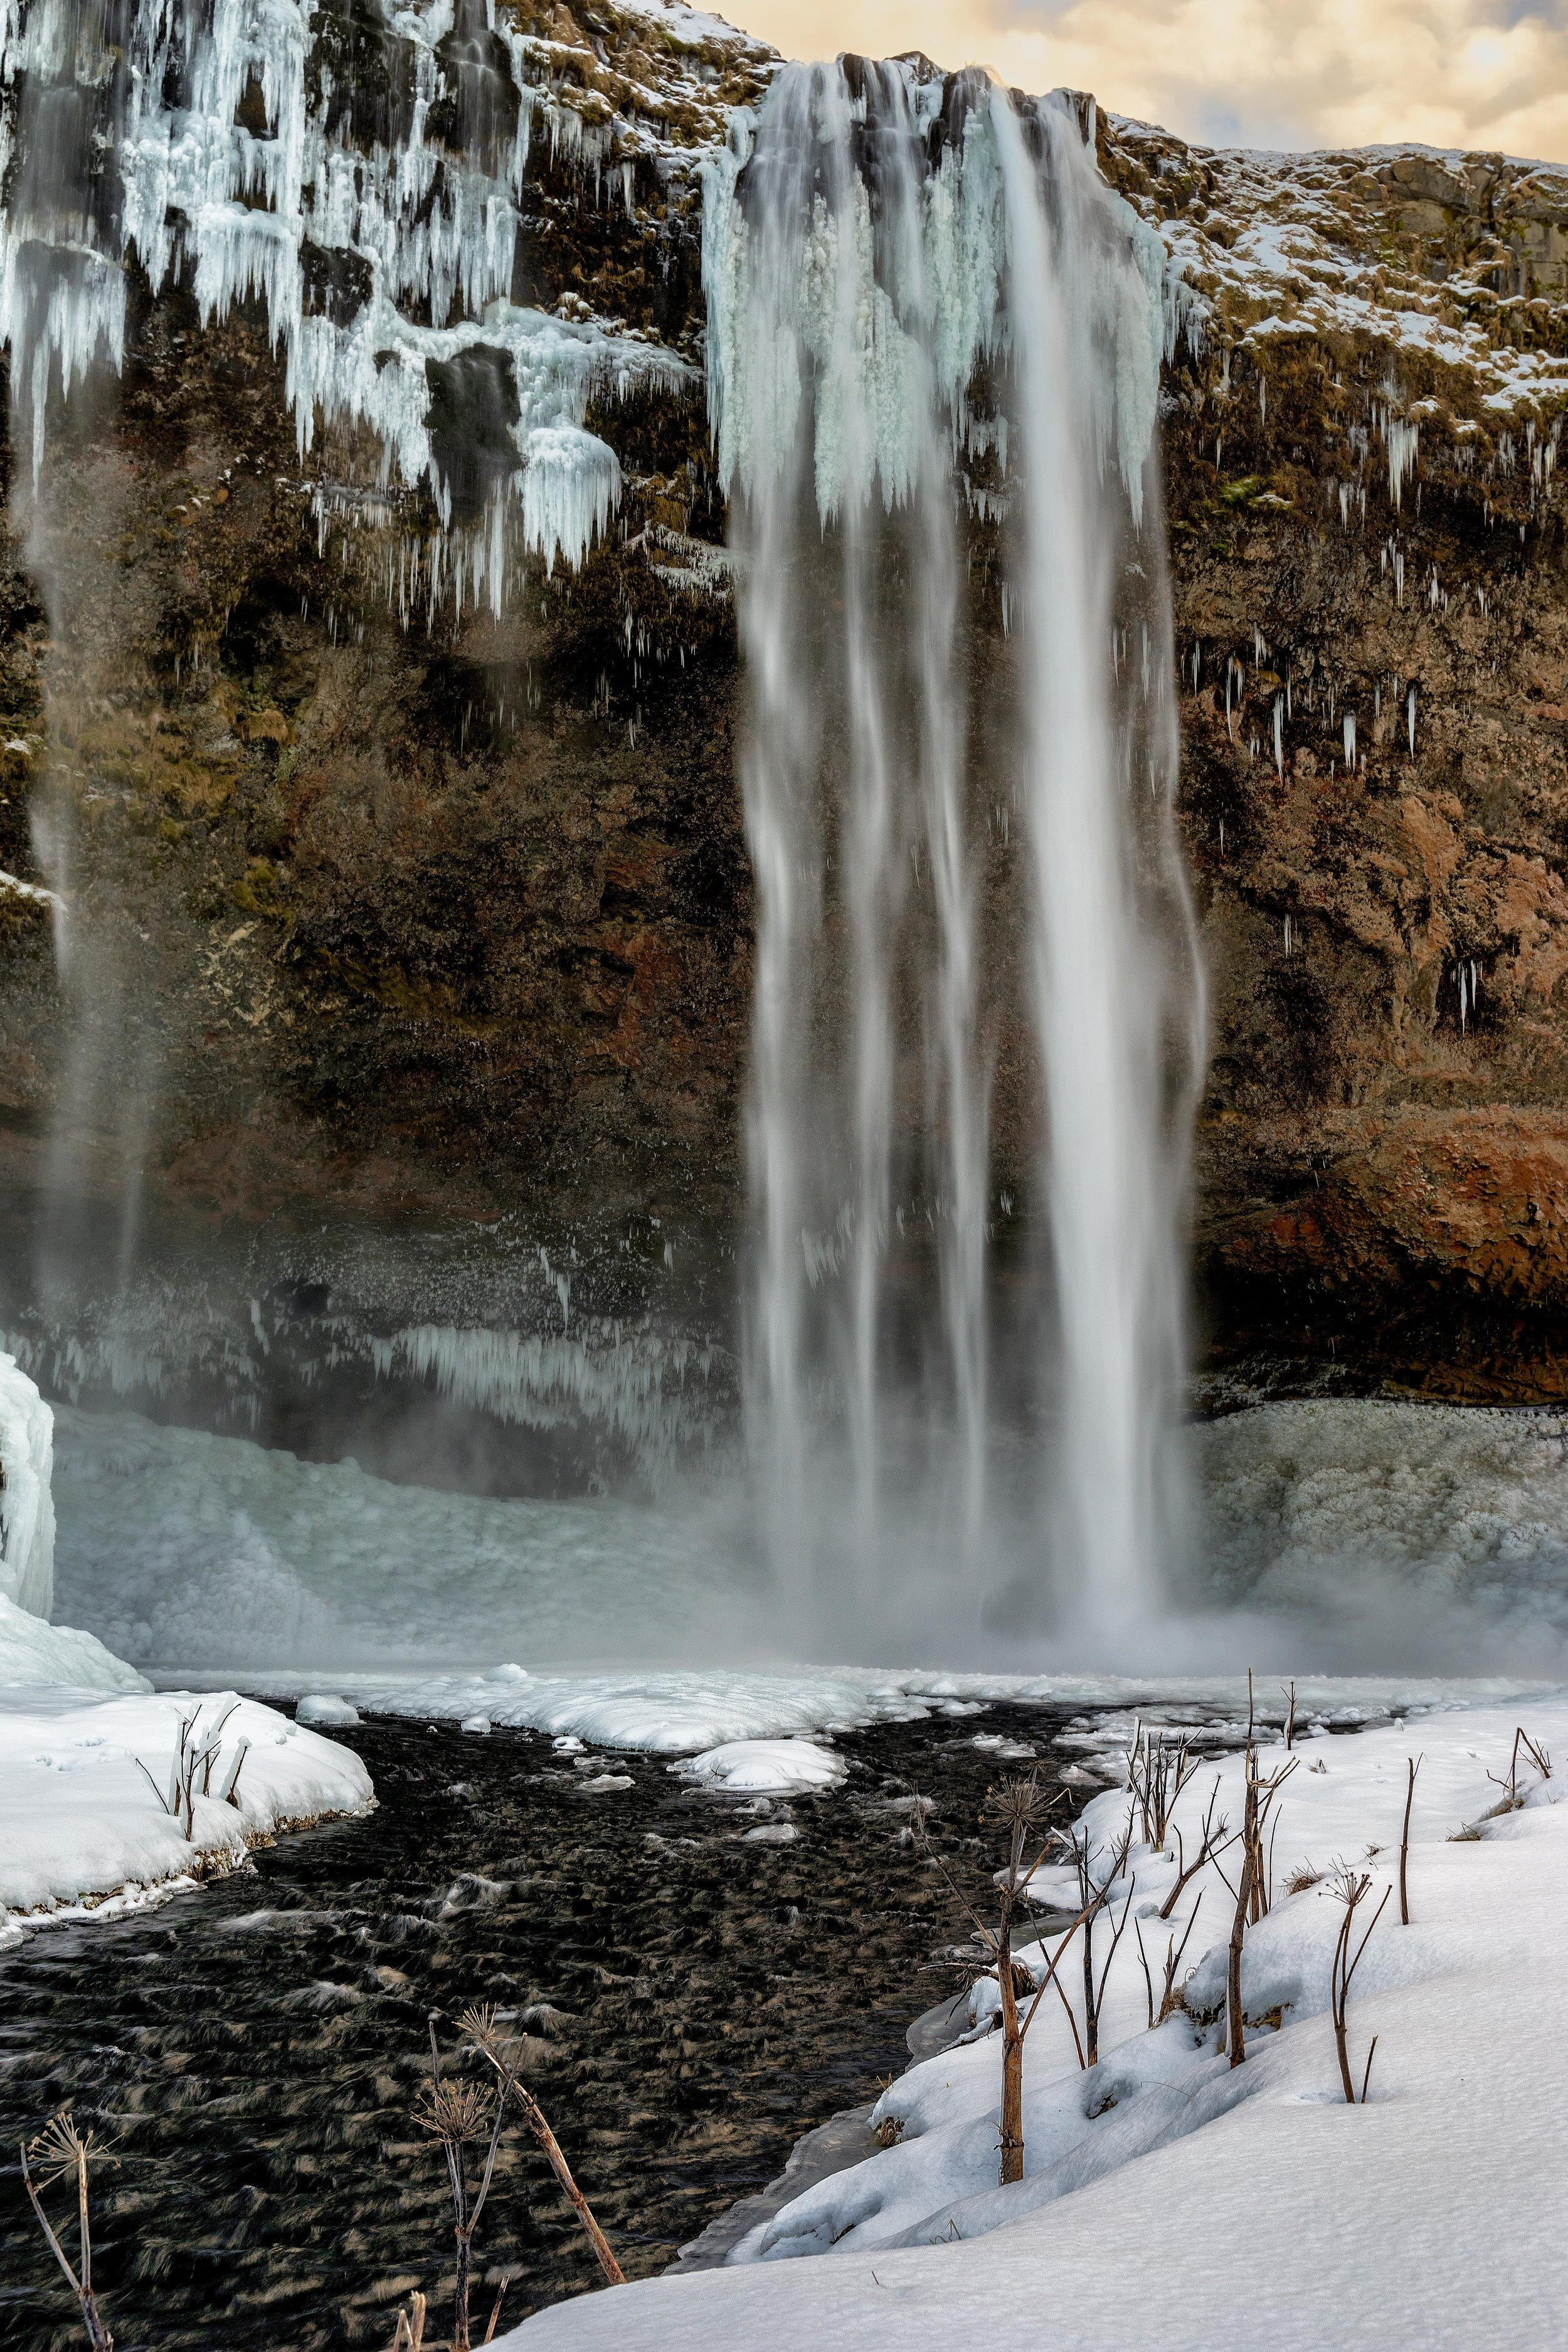 Iceland. snow. travel. adventure. photography. trip. epic landscape. snow. cold. freezing. sunrise. snow and ice. waterfall.jpg